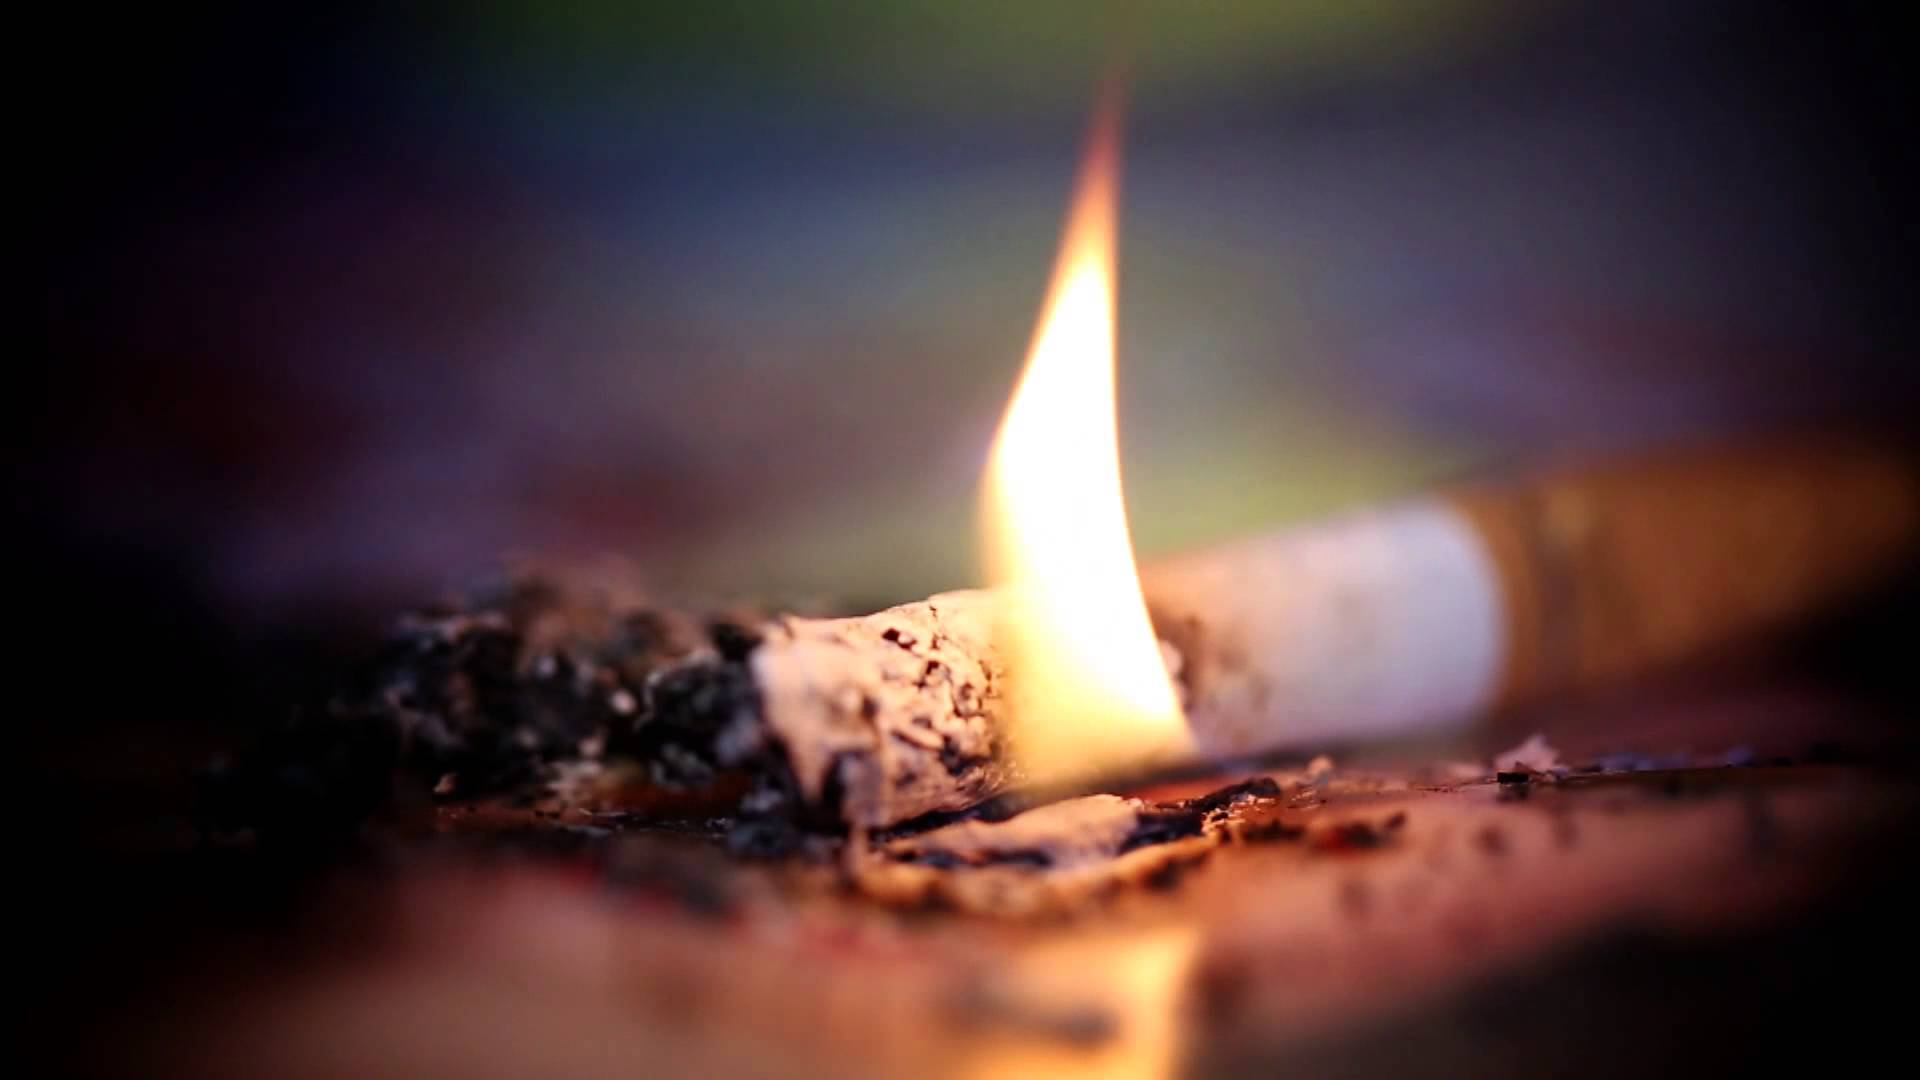 Fires caused by Smoking